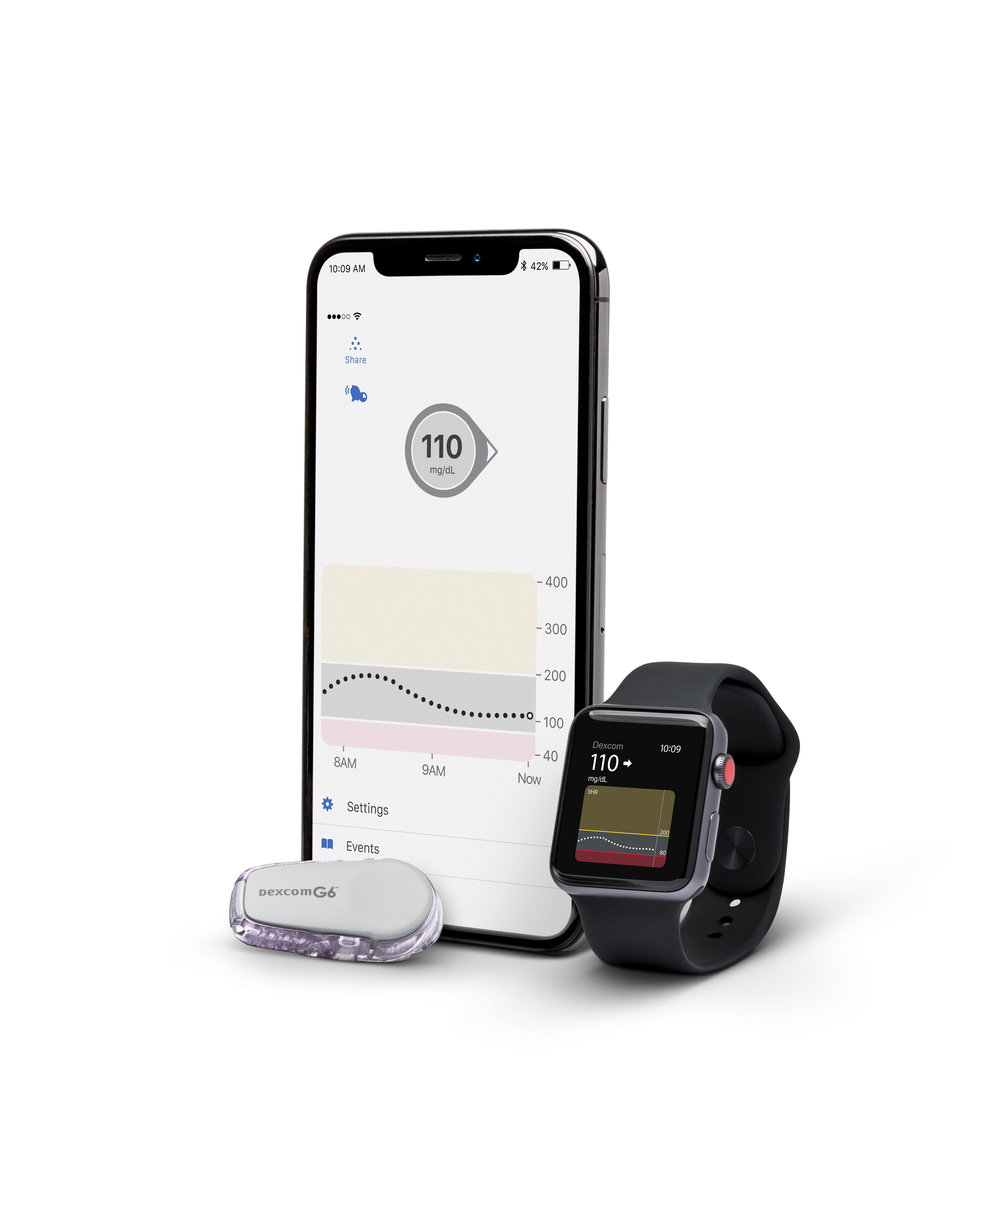 Dexcom G6 and Apple Watch